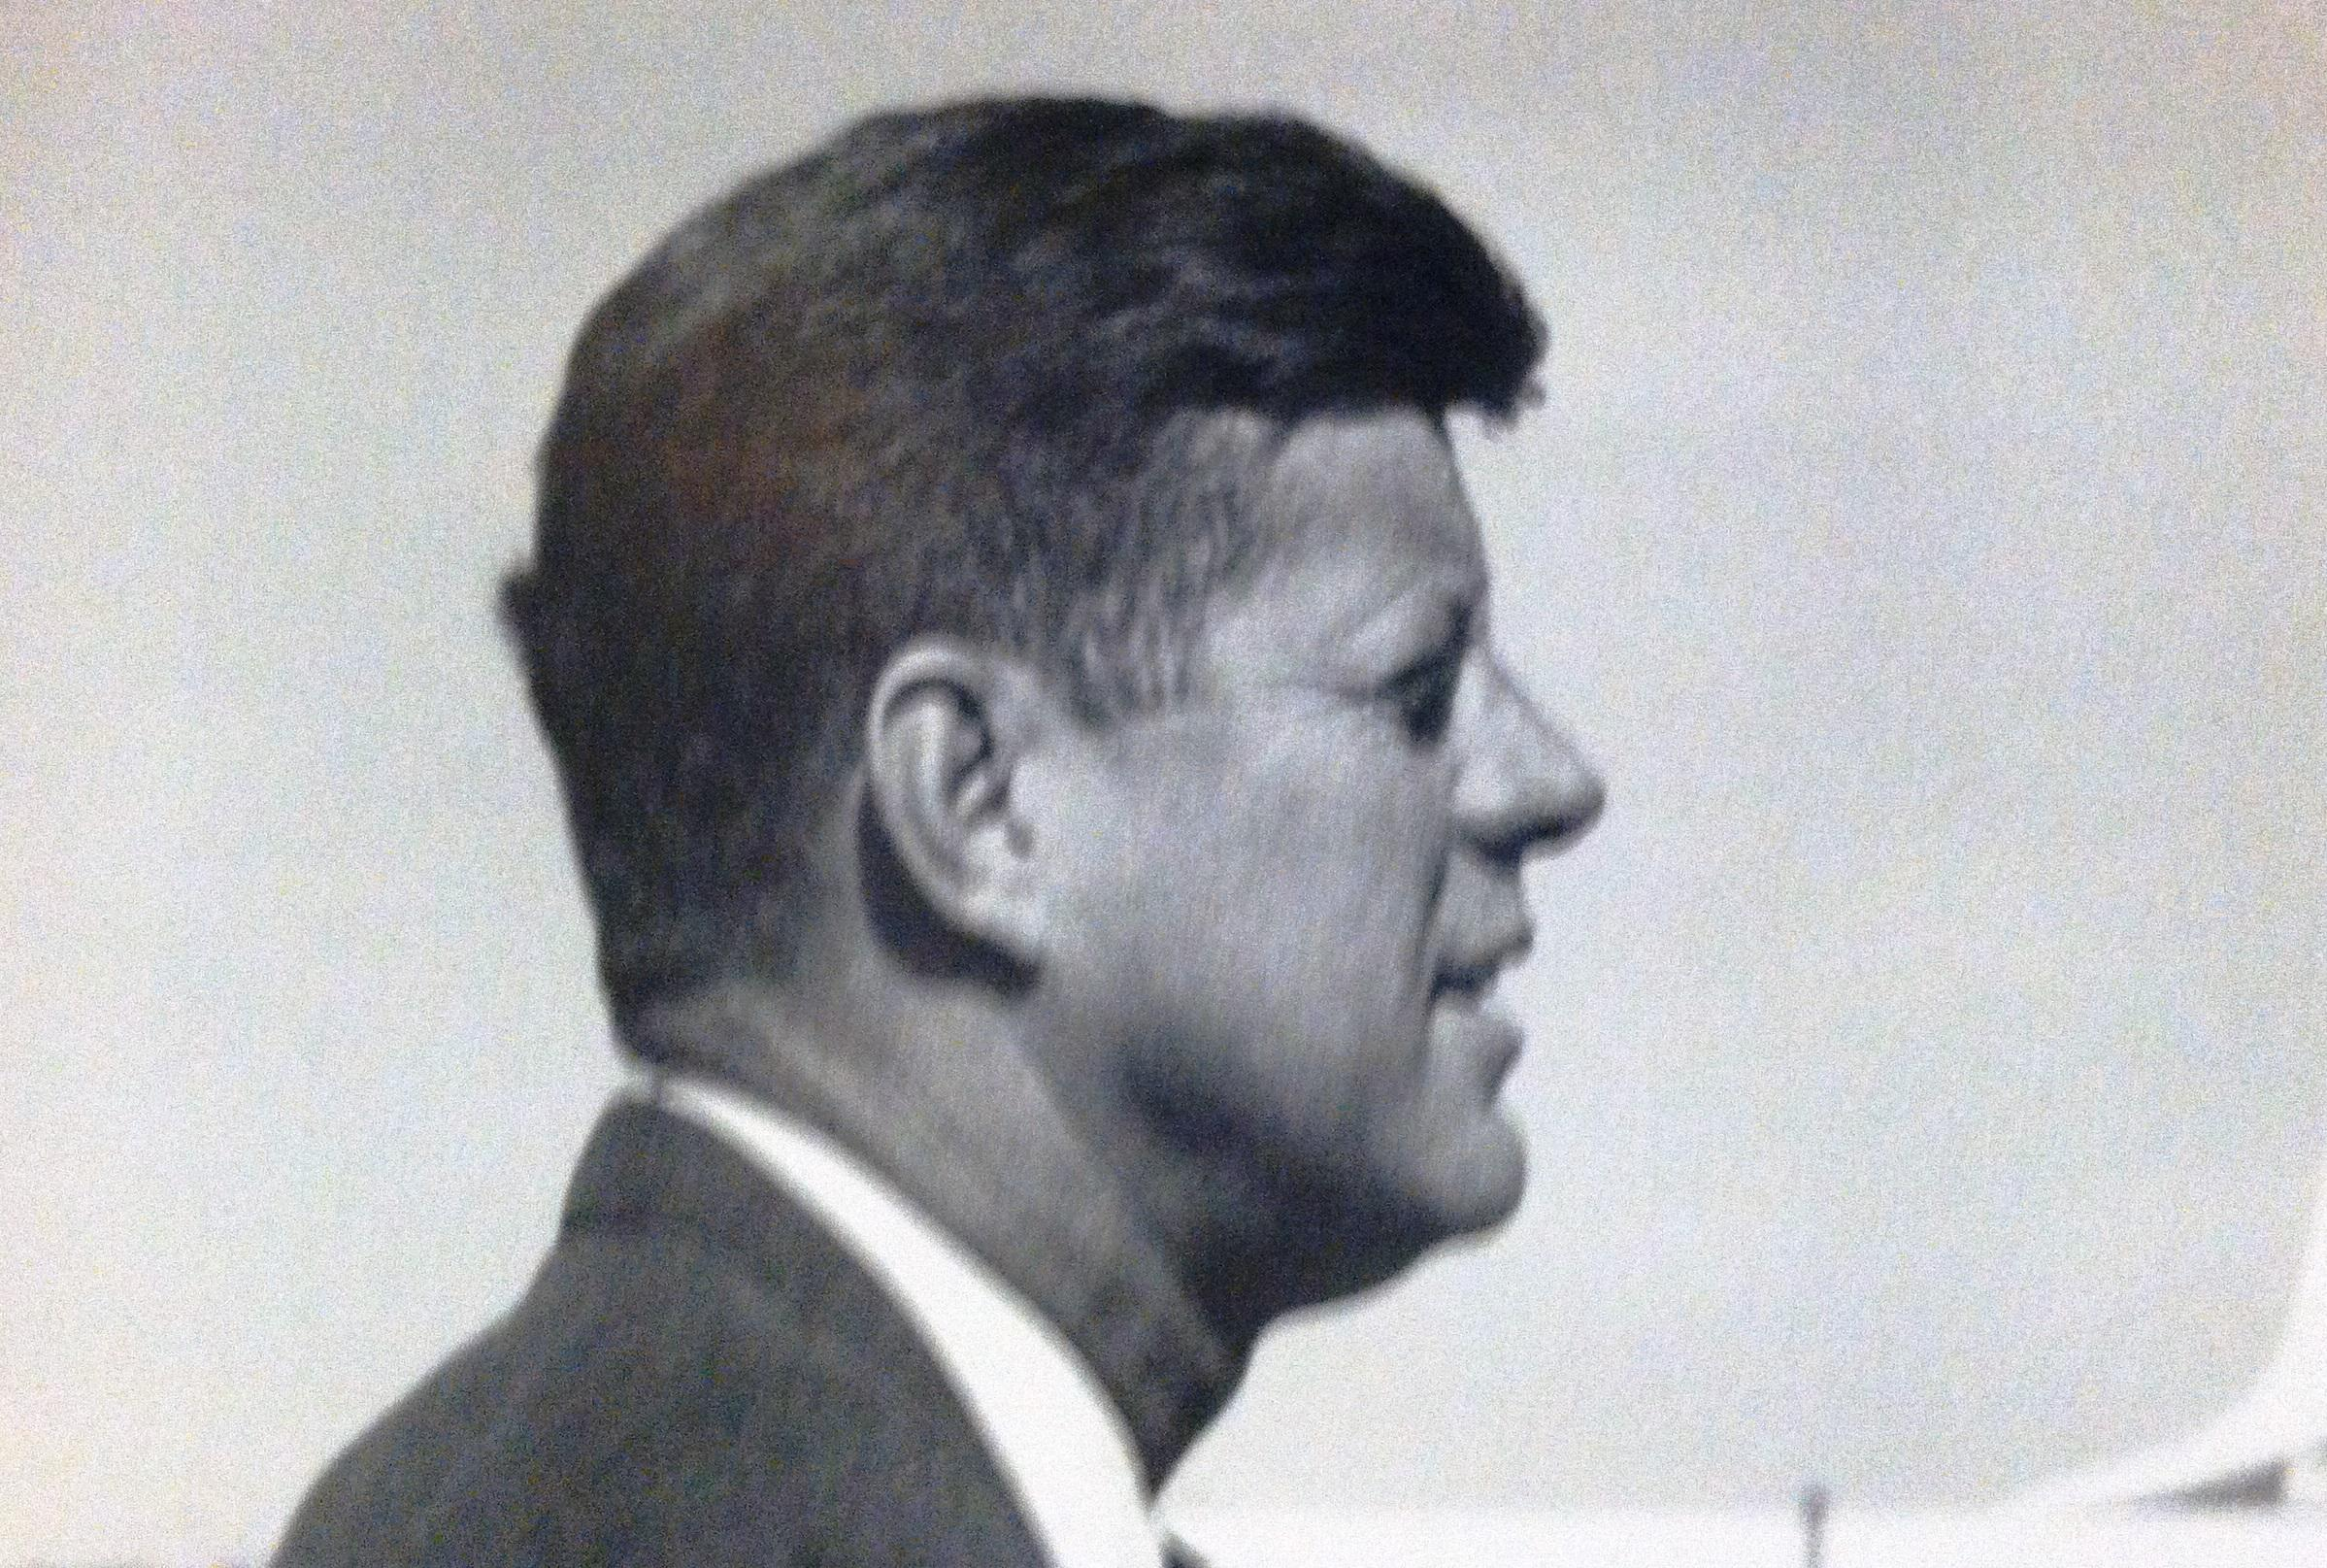 Jfks Visit To Tampa 50 Years Ago Celebrated Wusf News